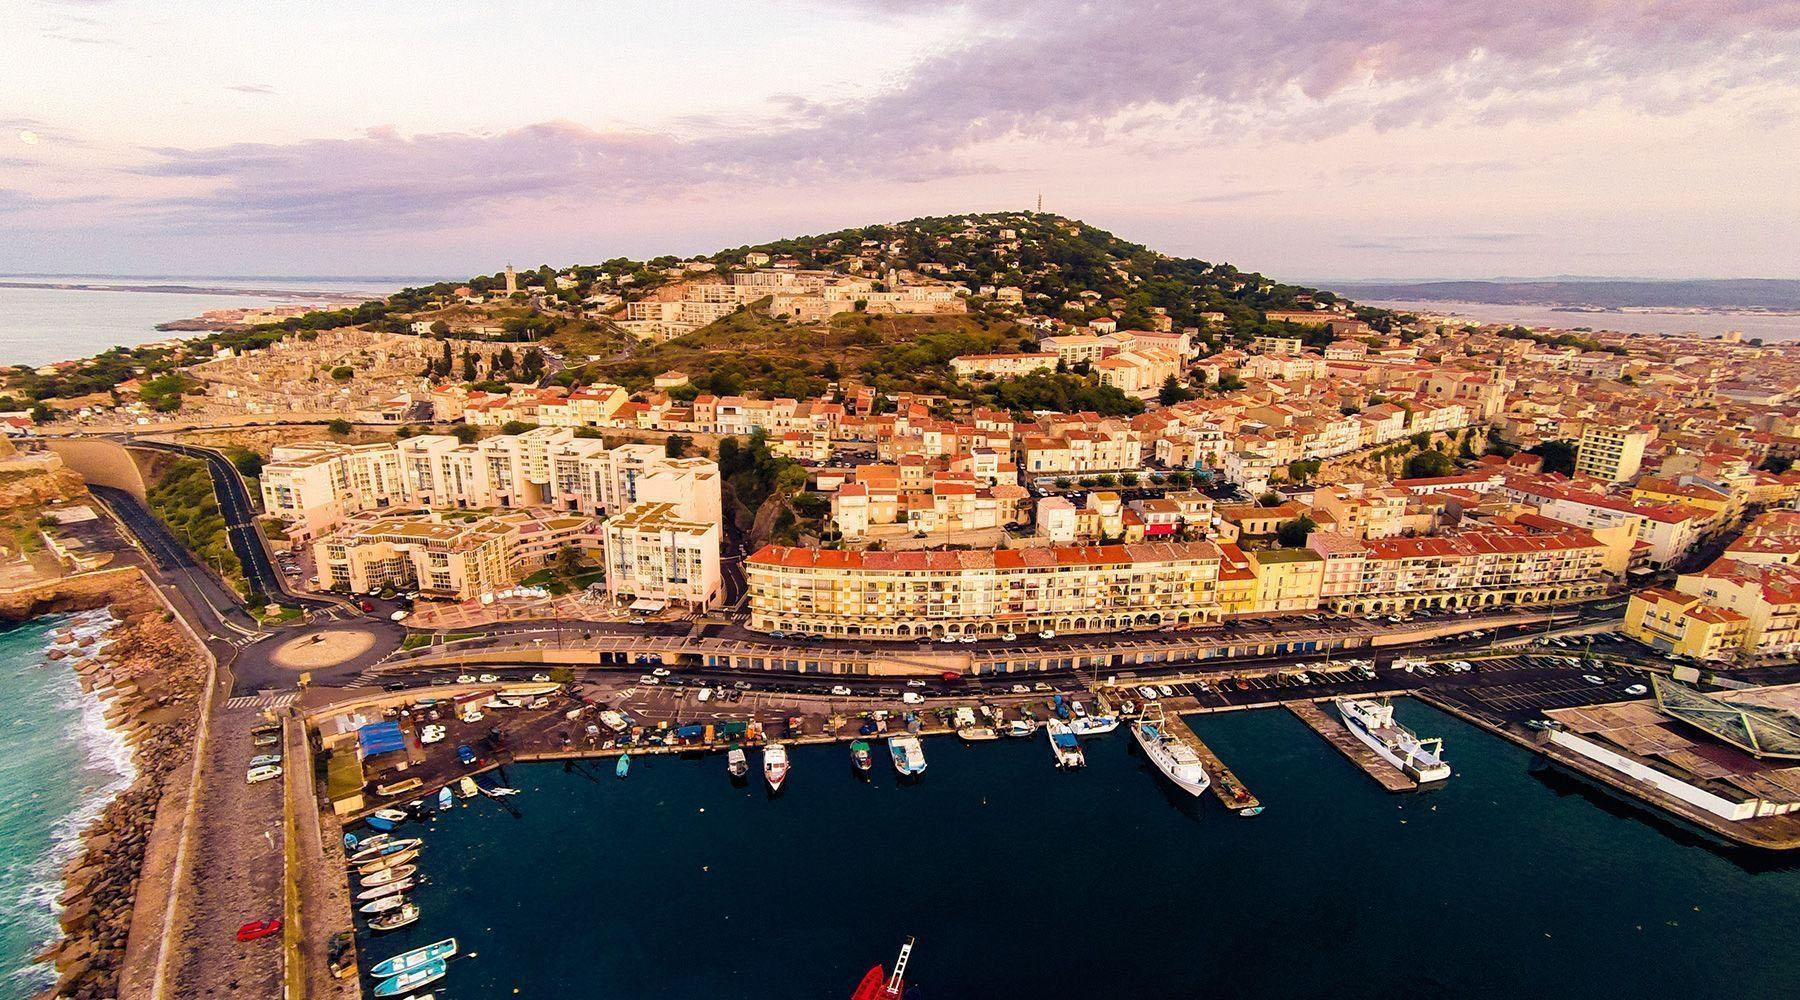 aerial view of brown houses in sete france